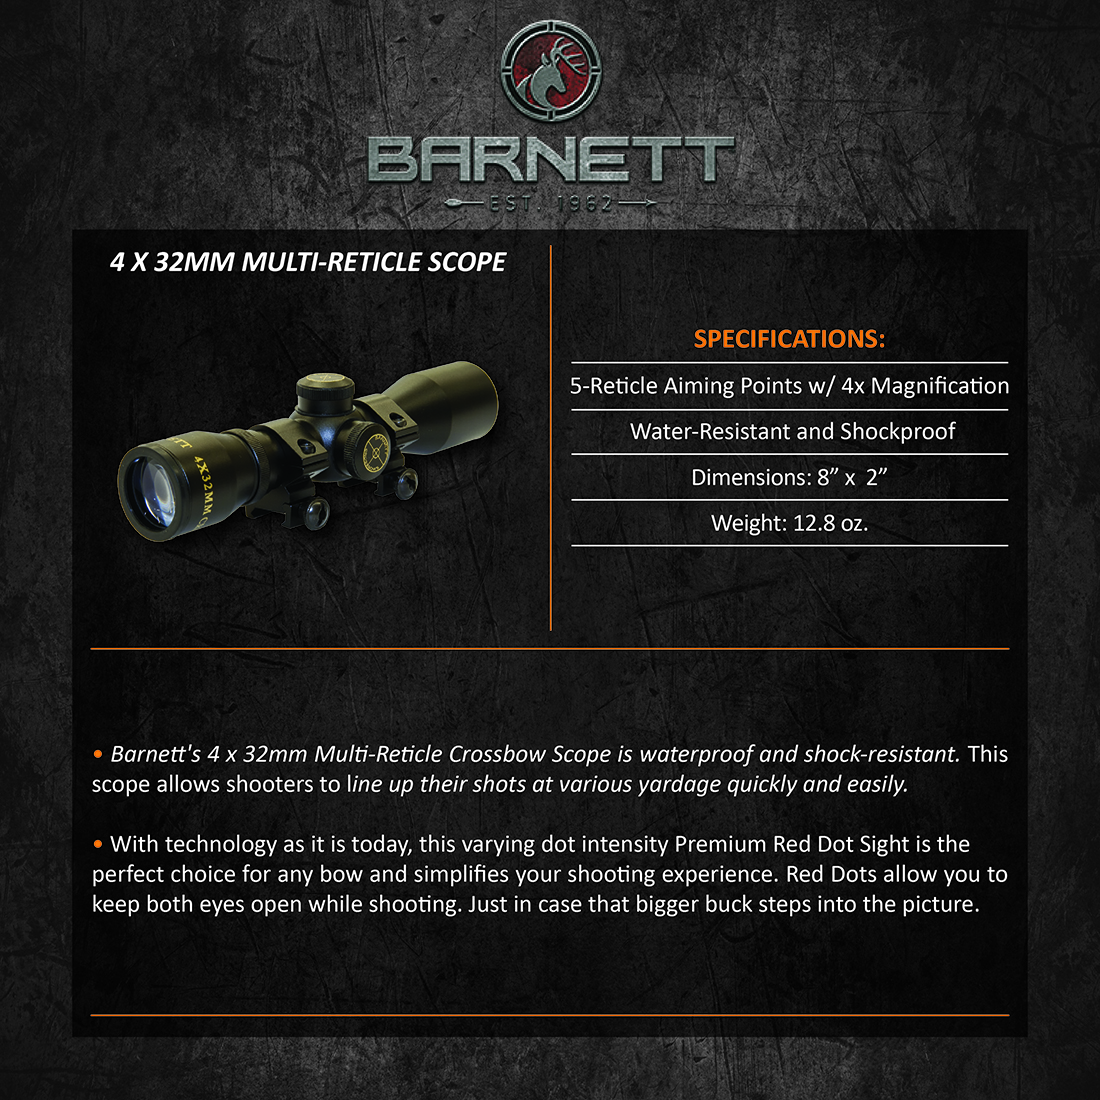 Barnett_4x32mm_MultiReticle_Scope_Product_Description